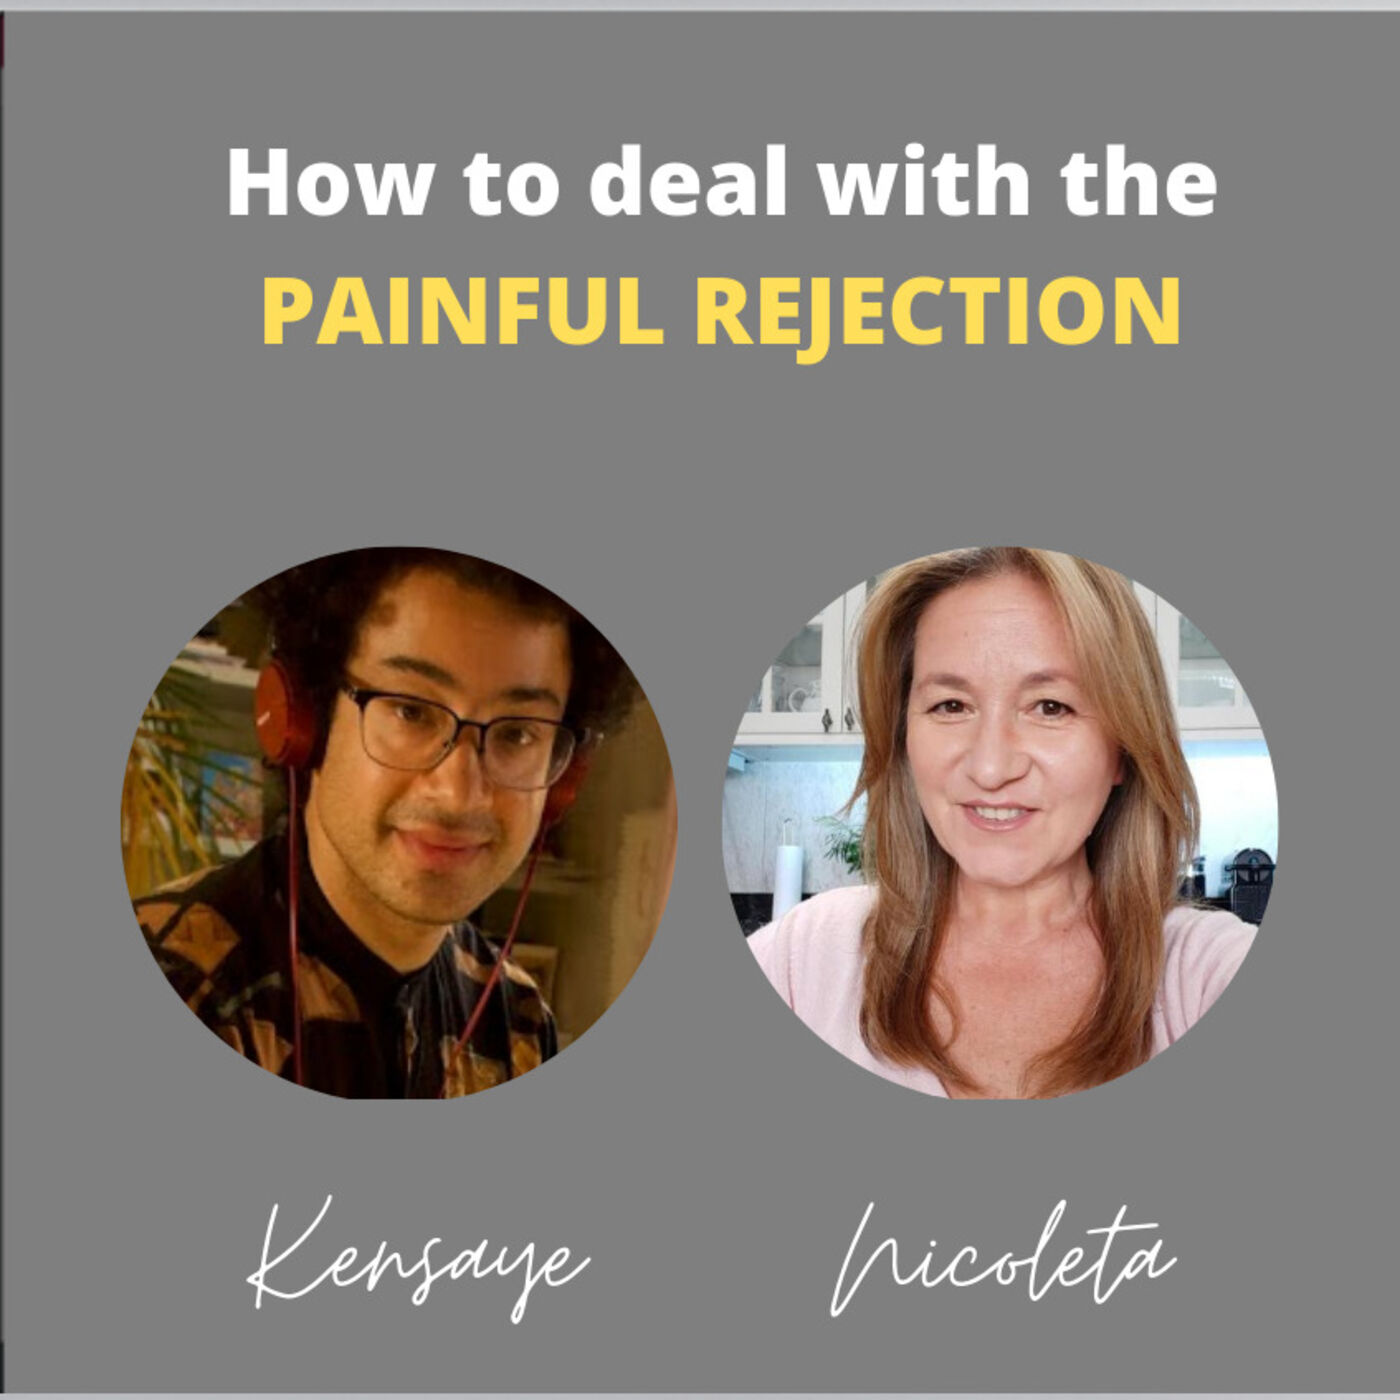 7 - How to cope with the painful rejection